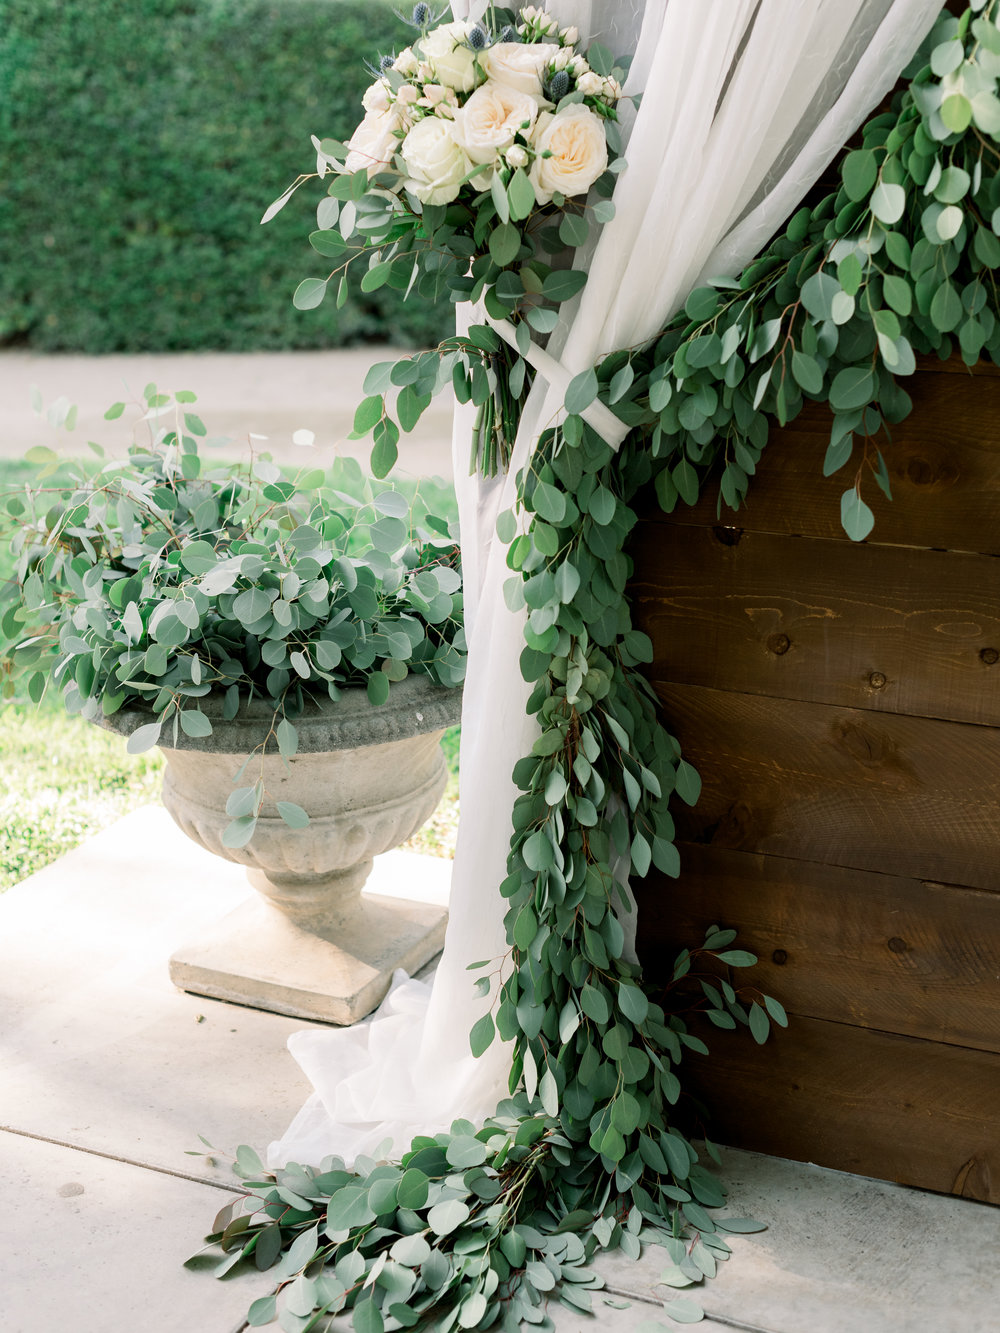 greenery-and-silk-wrapped-around-wedding-altar.jpg